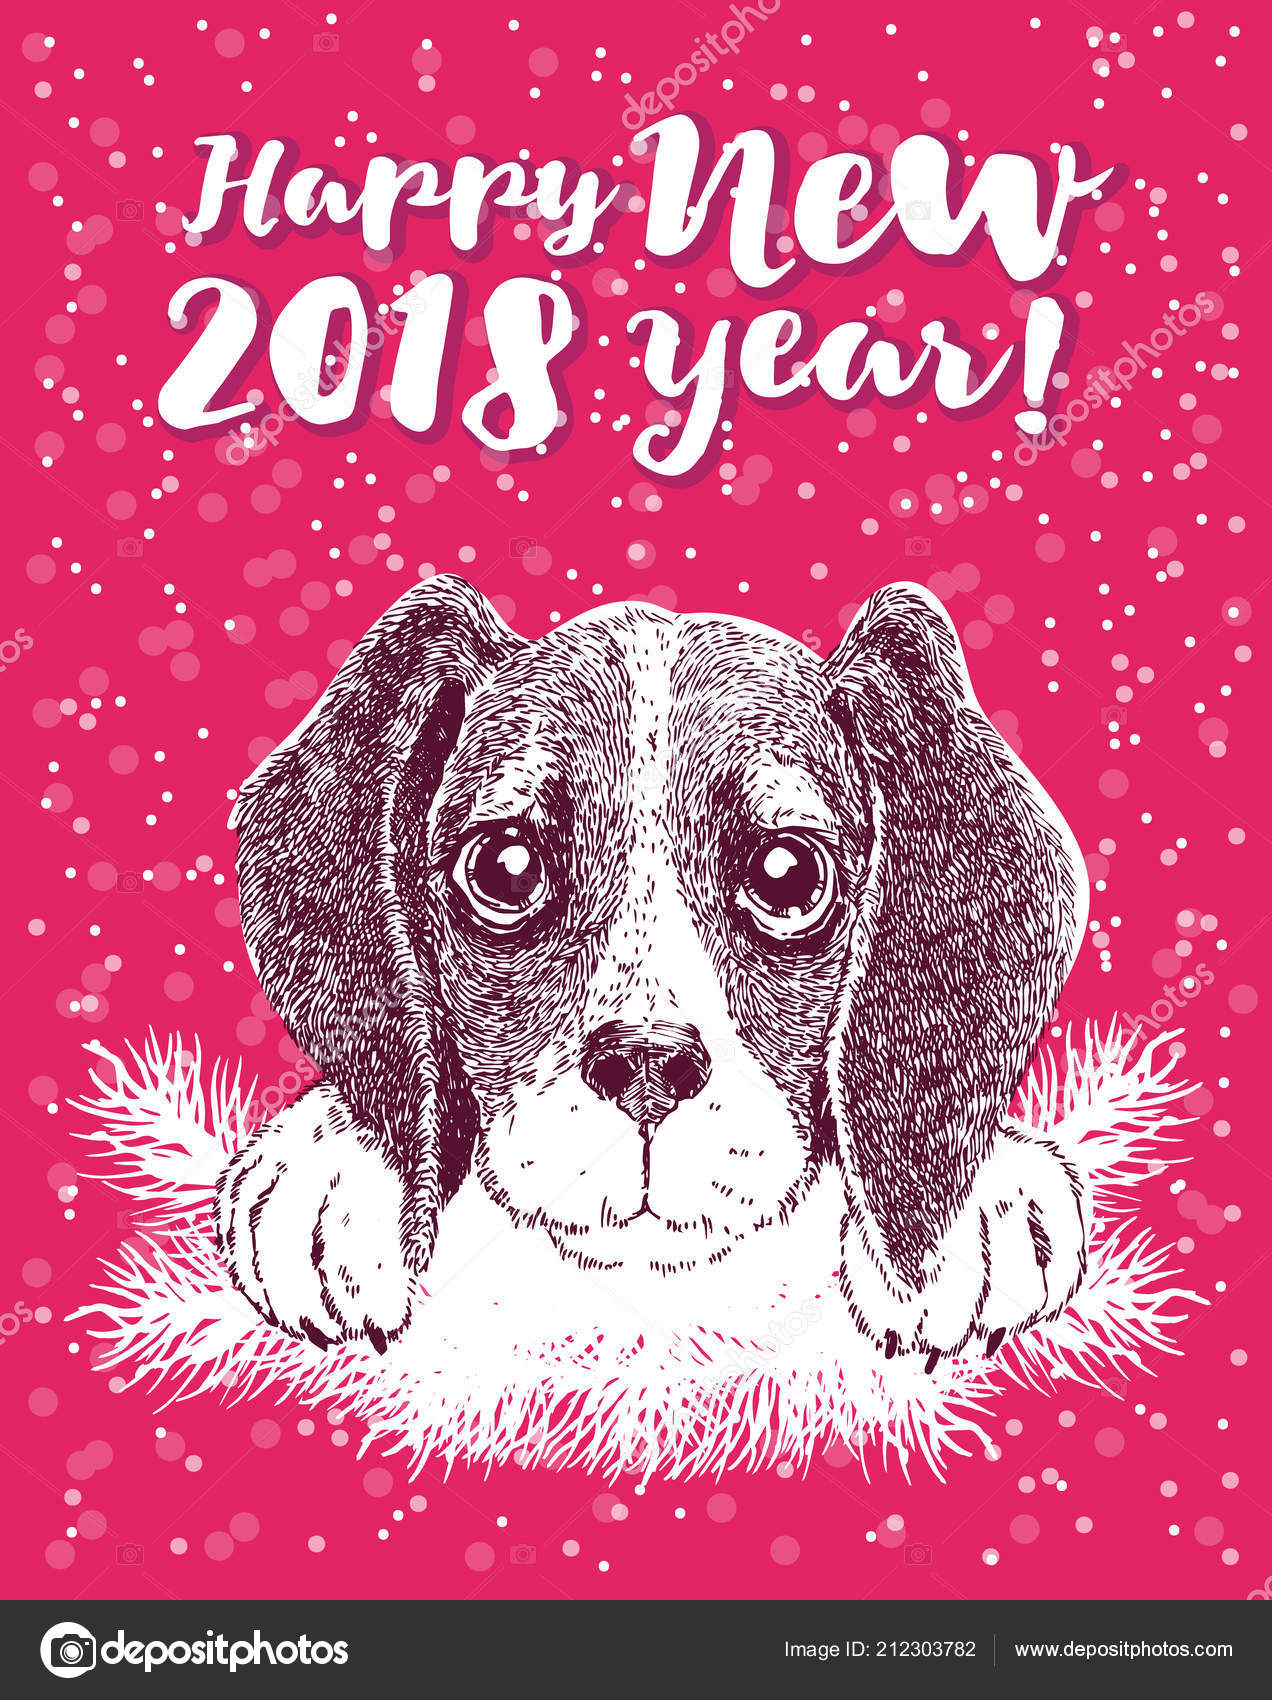 Happy new year greeting card vector portrait funny dog antler happy new year greeting card vector portrait funny dog antler stock vector m4hsunfo